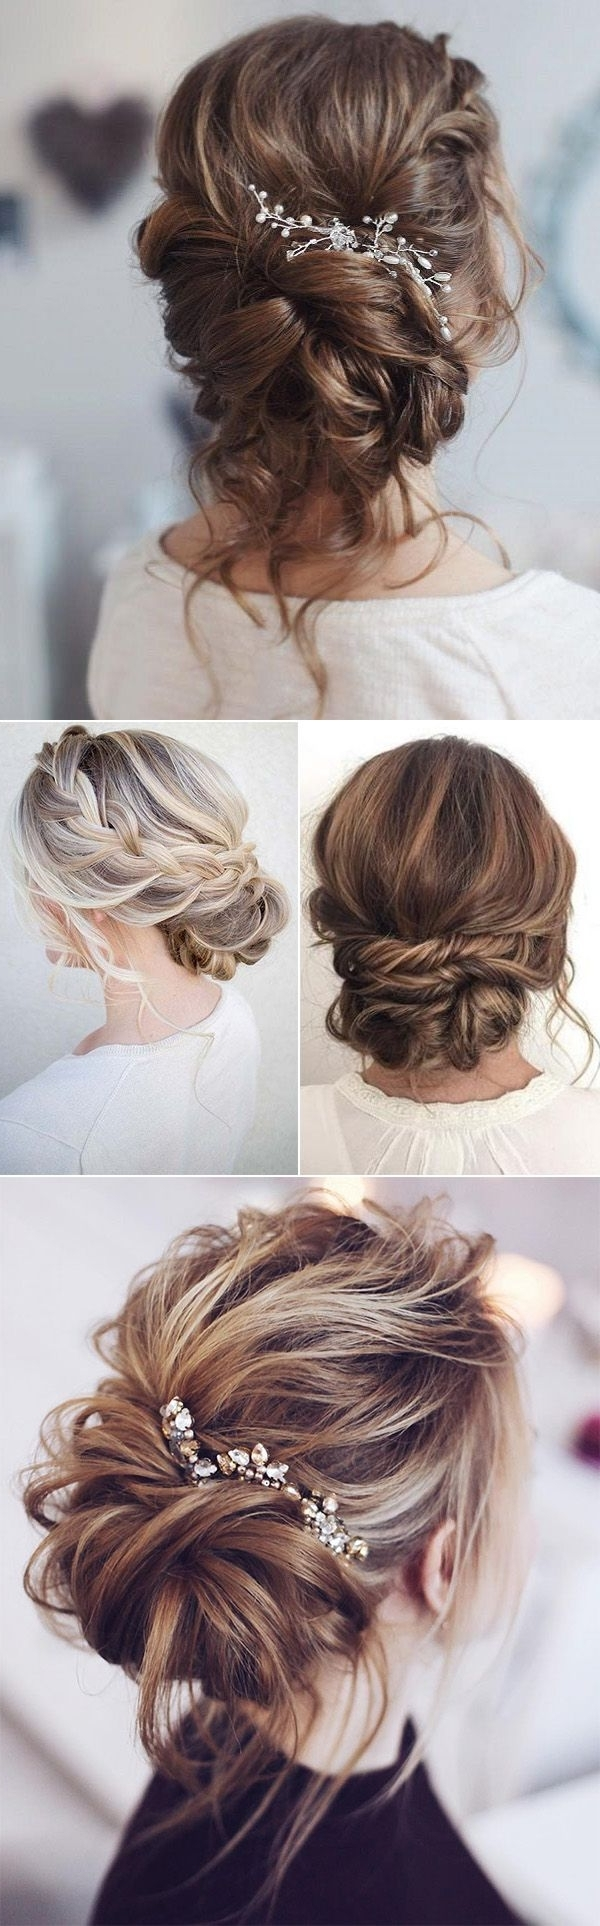 Current Wedding Hairstyles For Long Loose Hair Intended For 25 Drop Dead Bridal Updo Hairstyles Ideas For Any Wedding Venues (View 15 of 15)